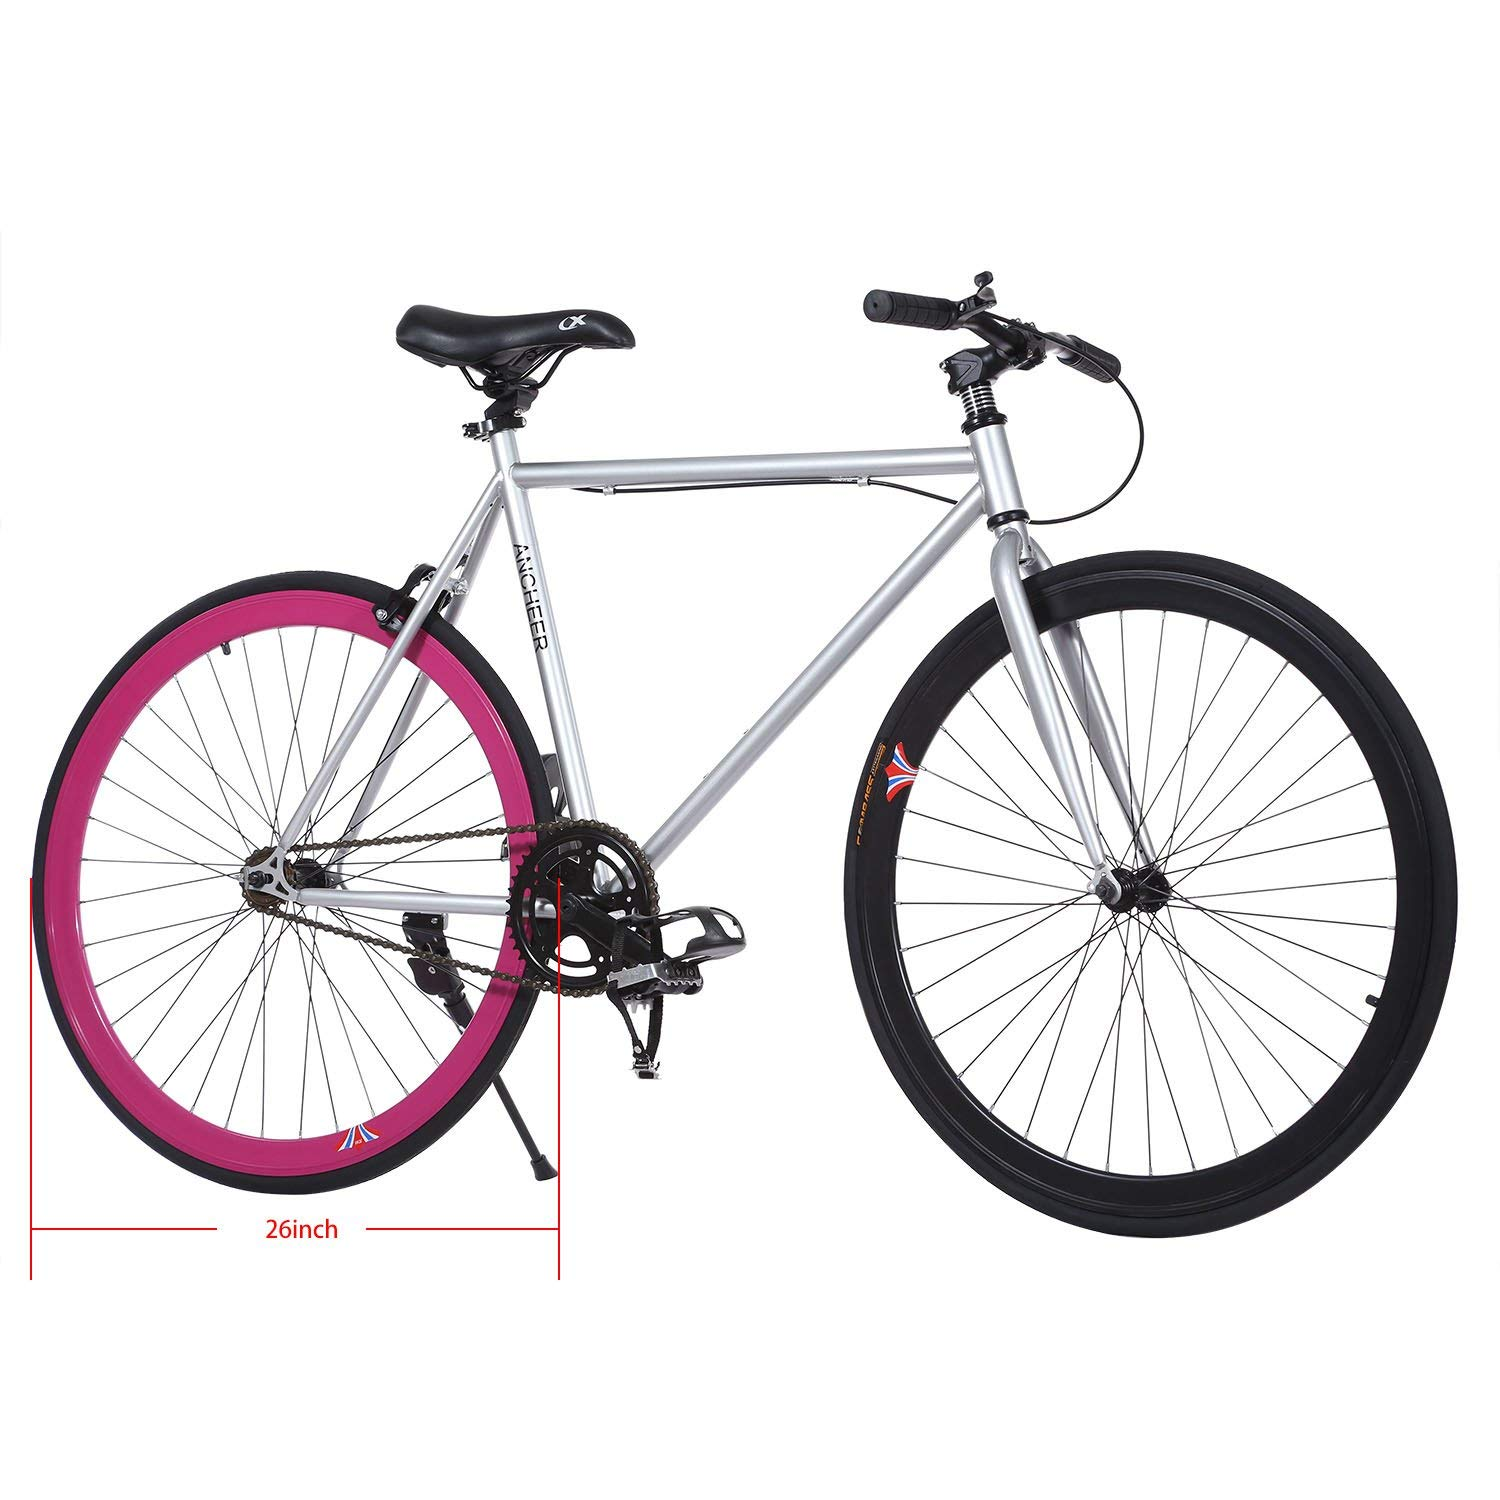 ANCHEER Fixed Gear Bike Single Speed Urban Fixie E-Bike for Adults Four Seasons Traveling Caping